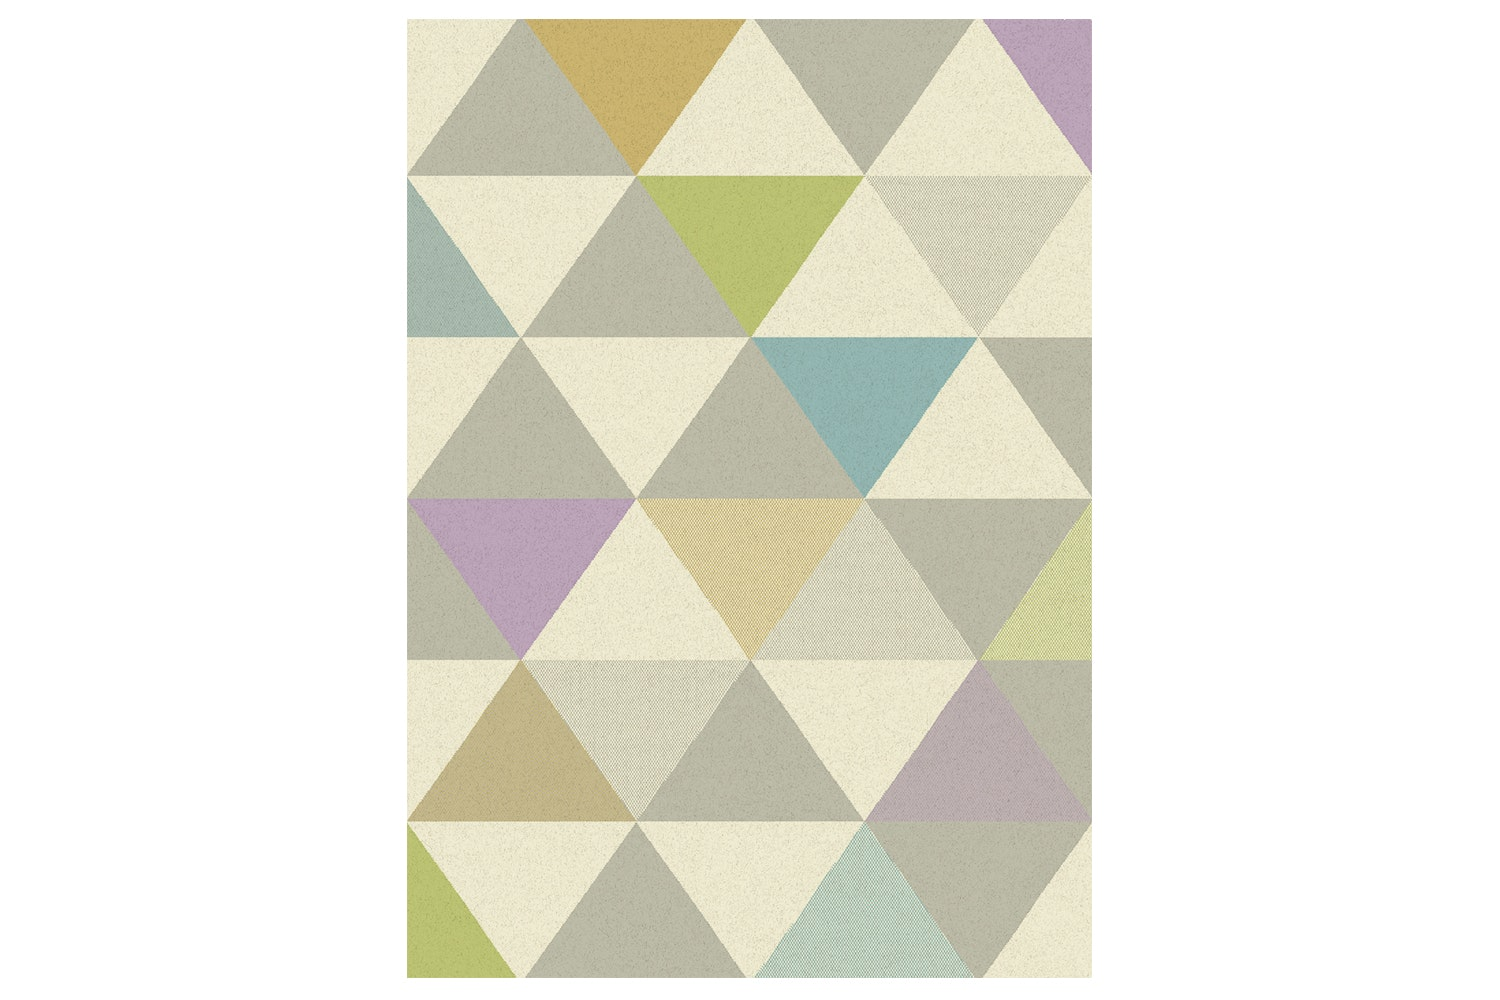 Focus Rug Triangles Multi Colour | 160X230